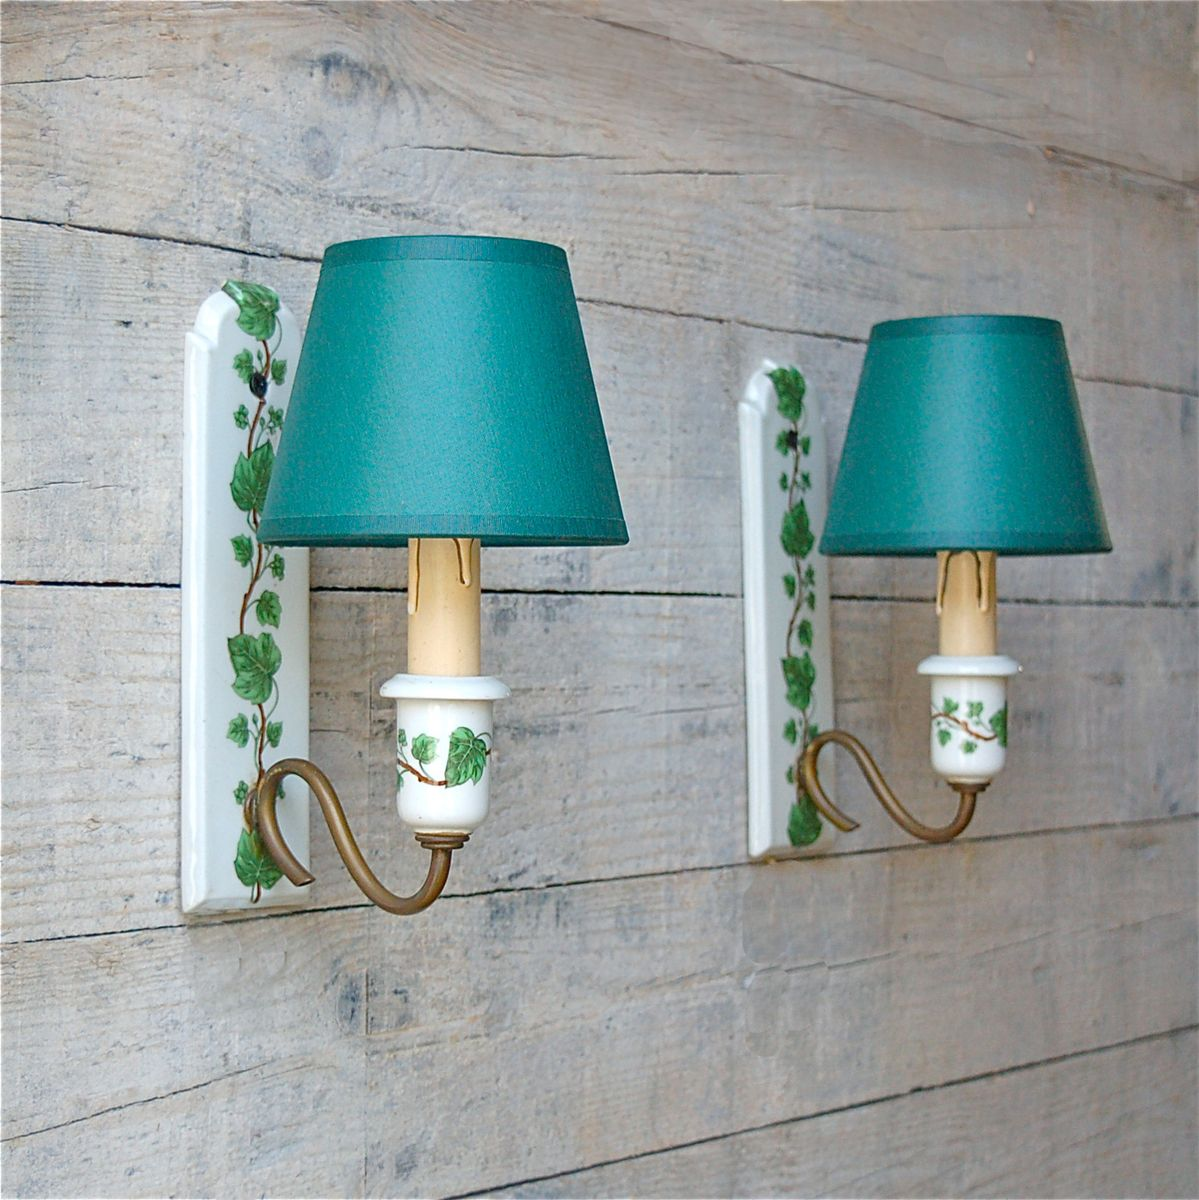 French Ceramic Wall Lights : French Porcelain Wall Lights, 1950s, Set of 2 for sale at Pamono